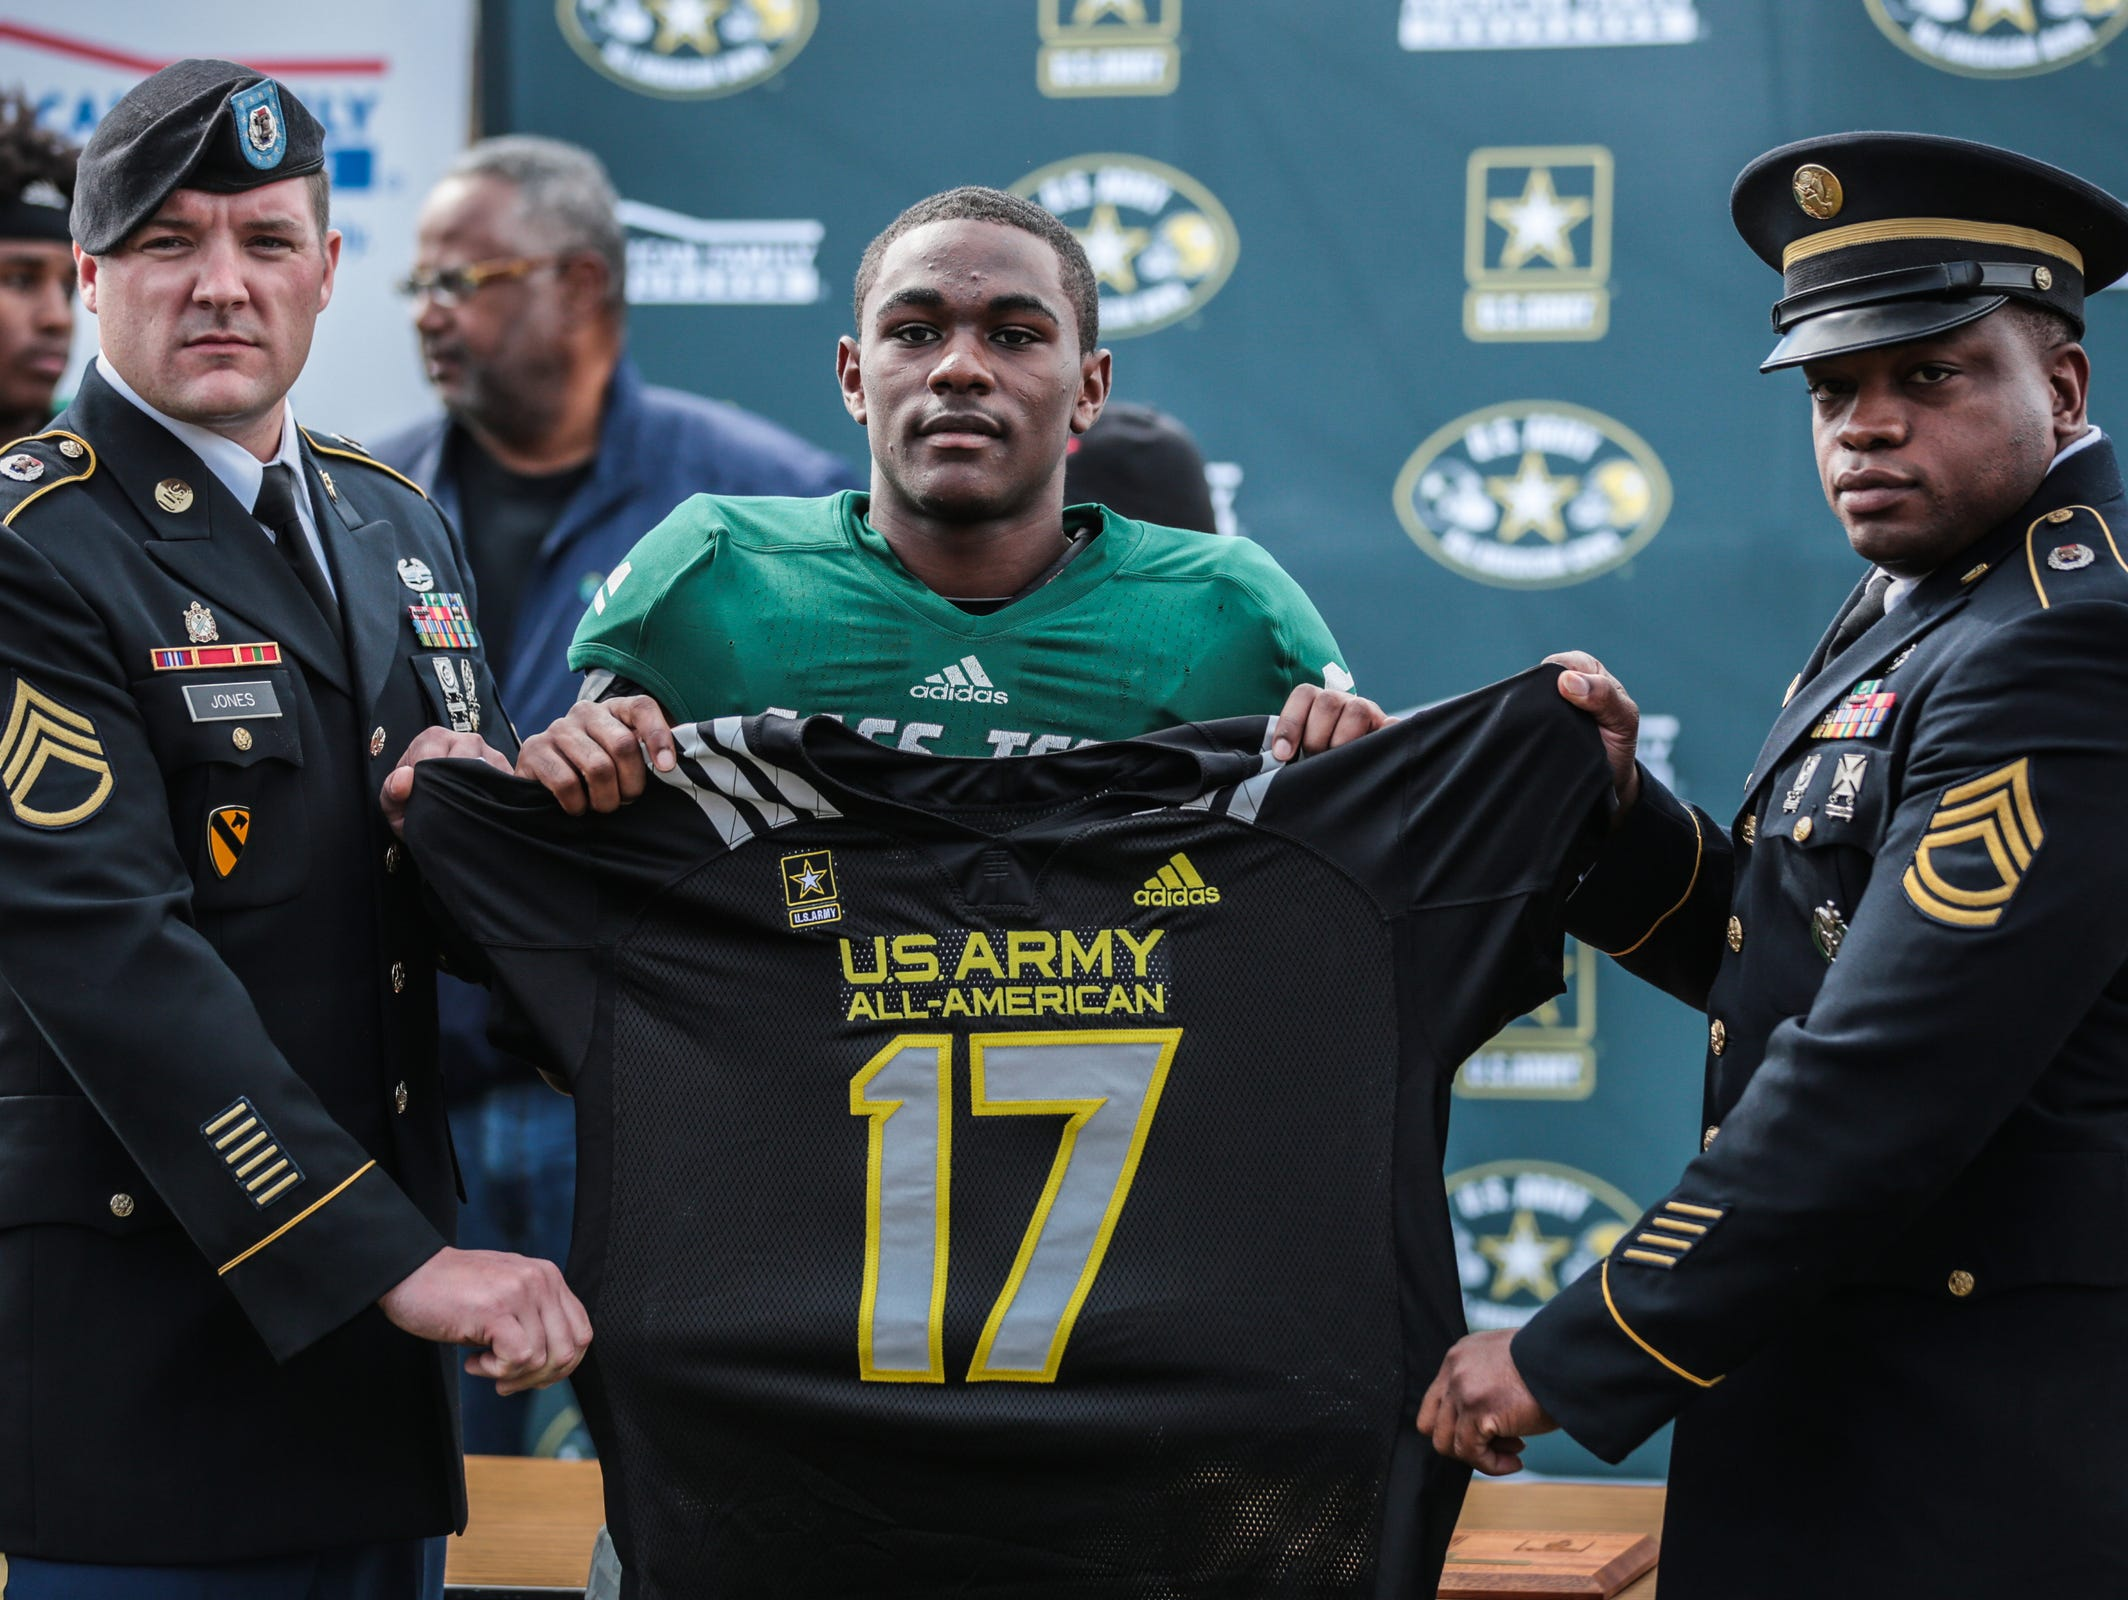 Detroit Cass Tech's Donovan Johnson honored as 2017 U.S. Army All-Americans during halftime of game against Detroit King on Oct. 1, 2016.